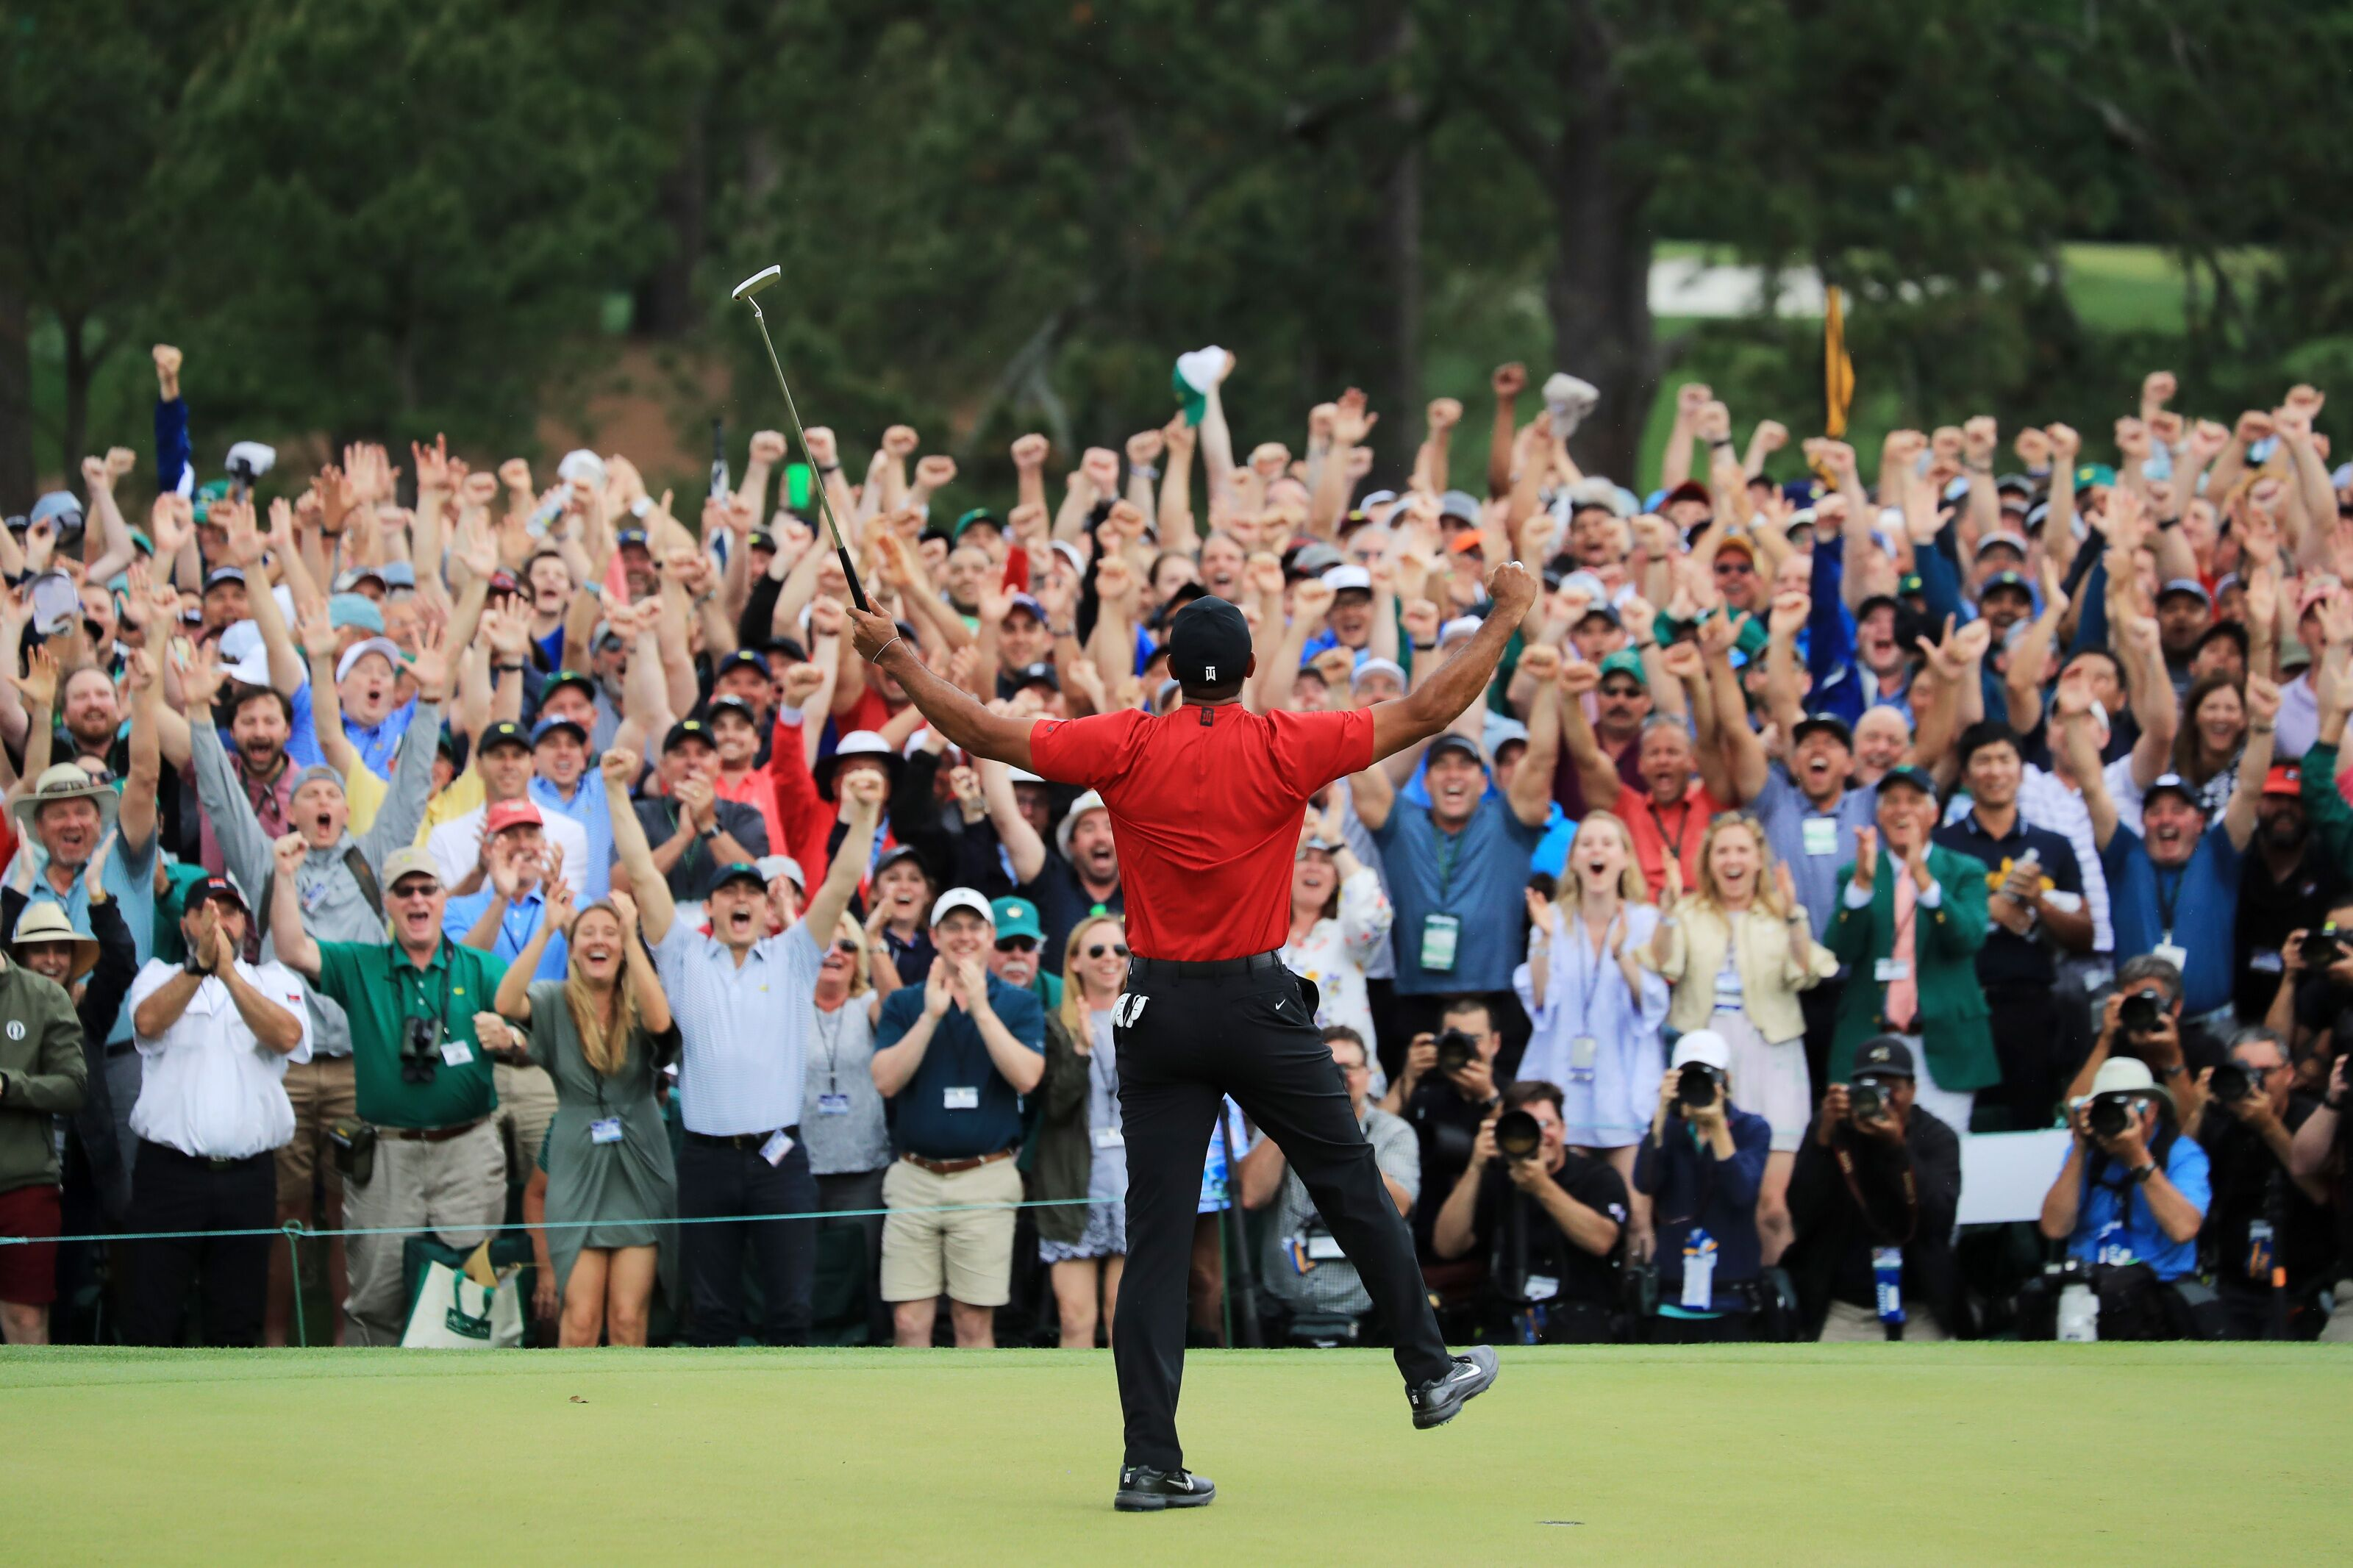 AUGUSTA, GEORGIA - APRIL 14: Patrons cheer as Tiger Woods of the United States celebrates after sinking his putt on the 18th green to win during the final round of the Masters at Augusta National Golf Club on April 14, 2019 in Augusta, Georgia. (Photo by David Cannon/Getty Images)